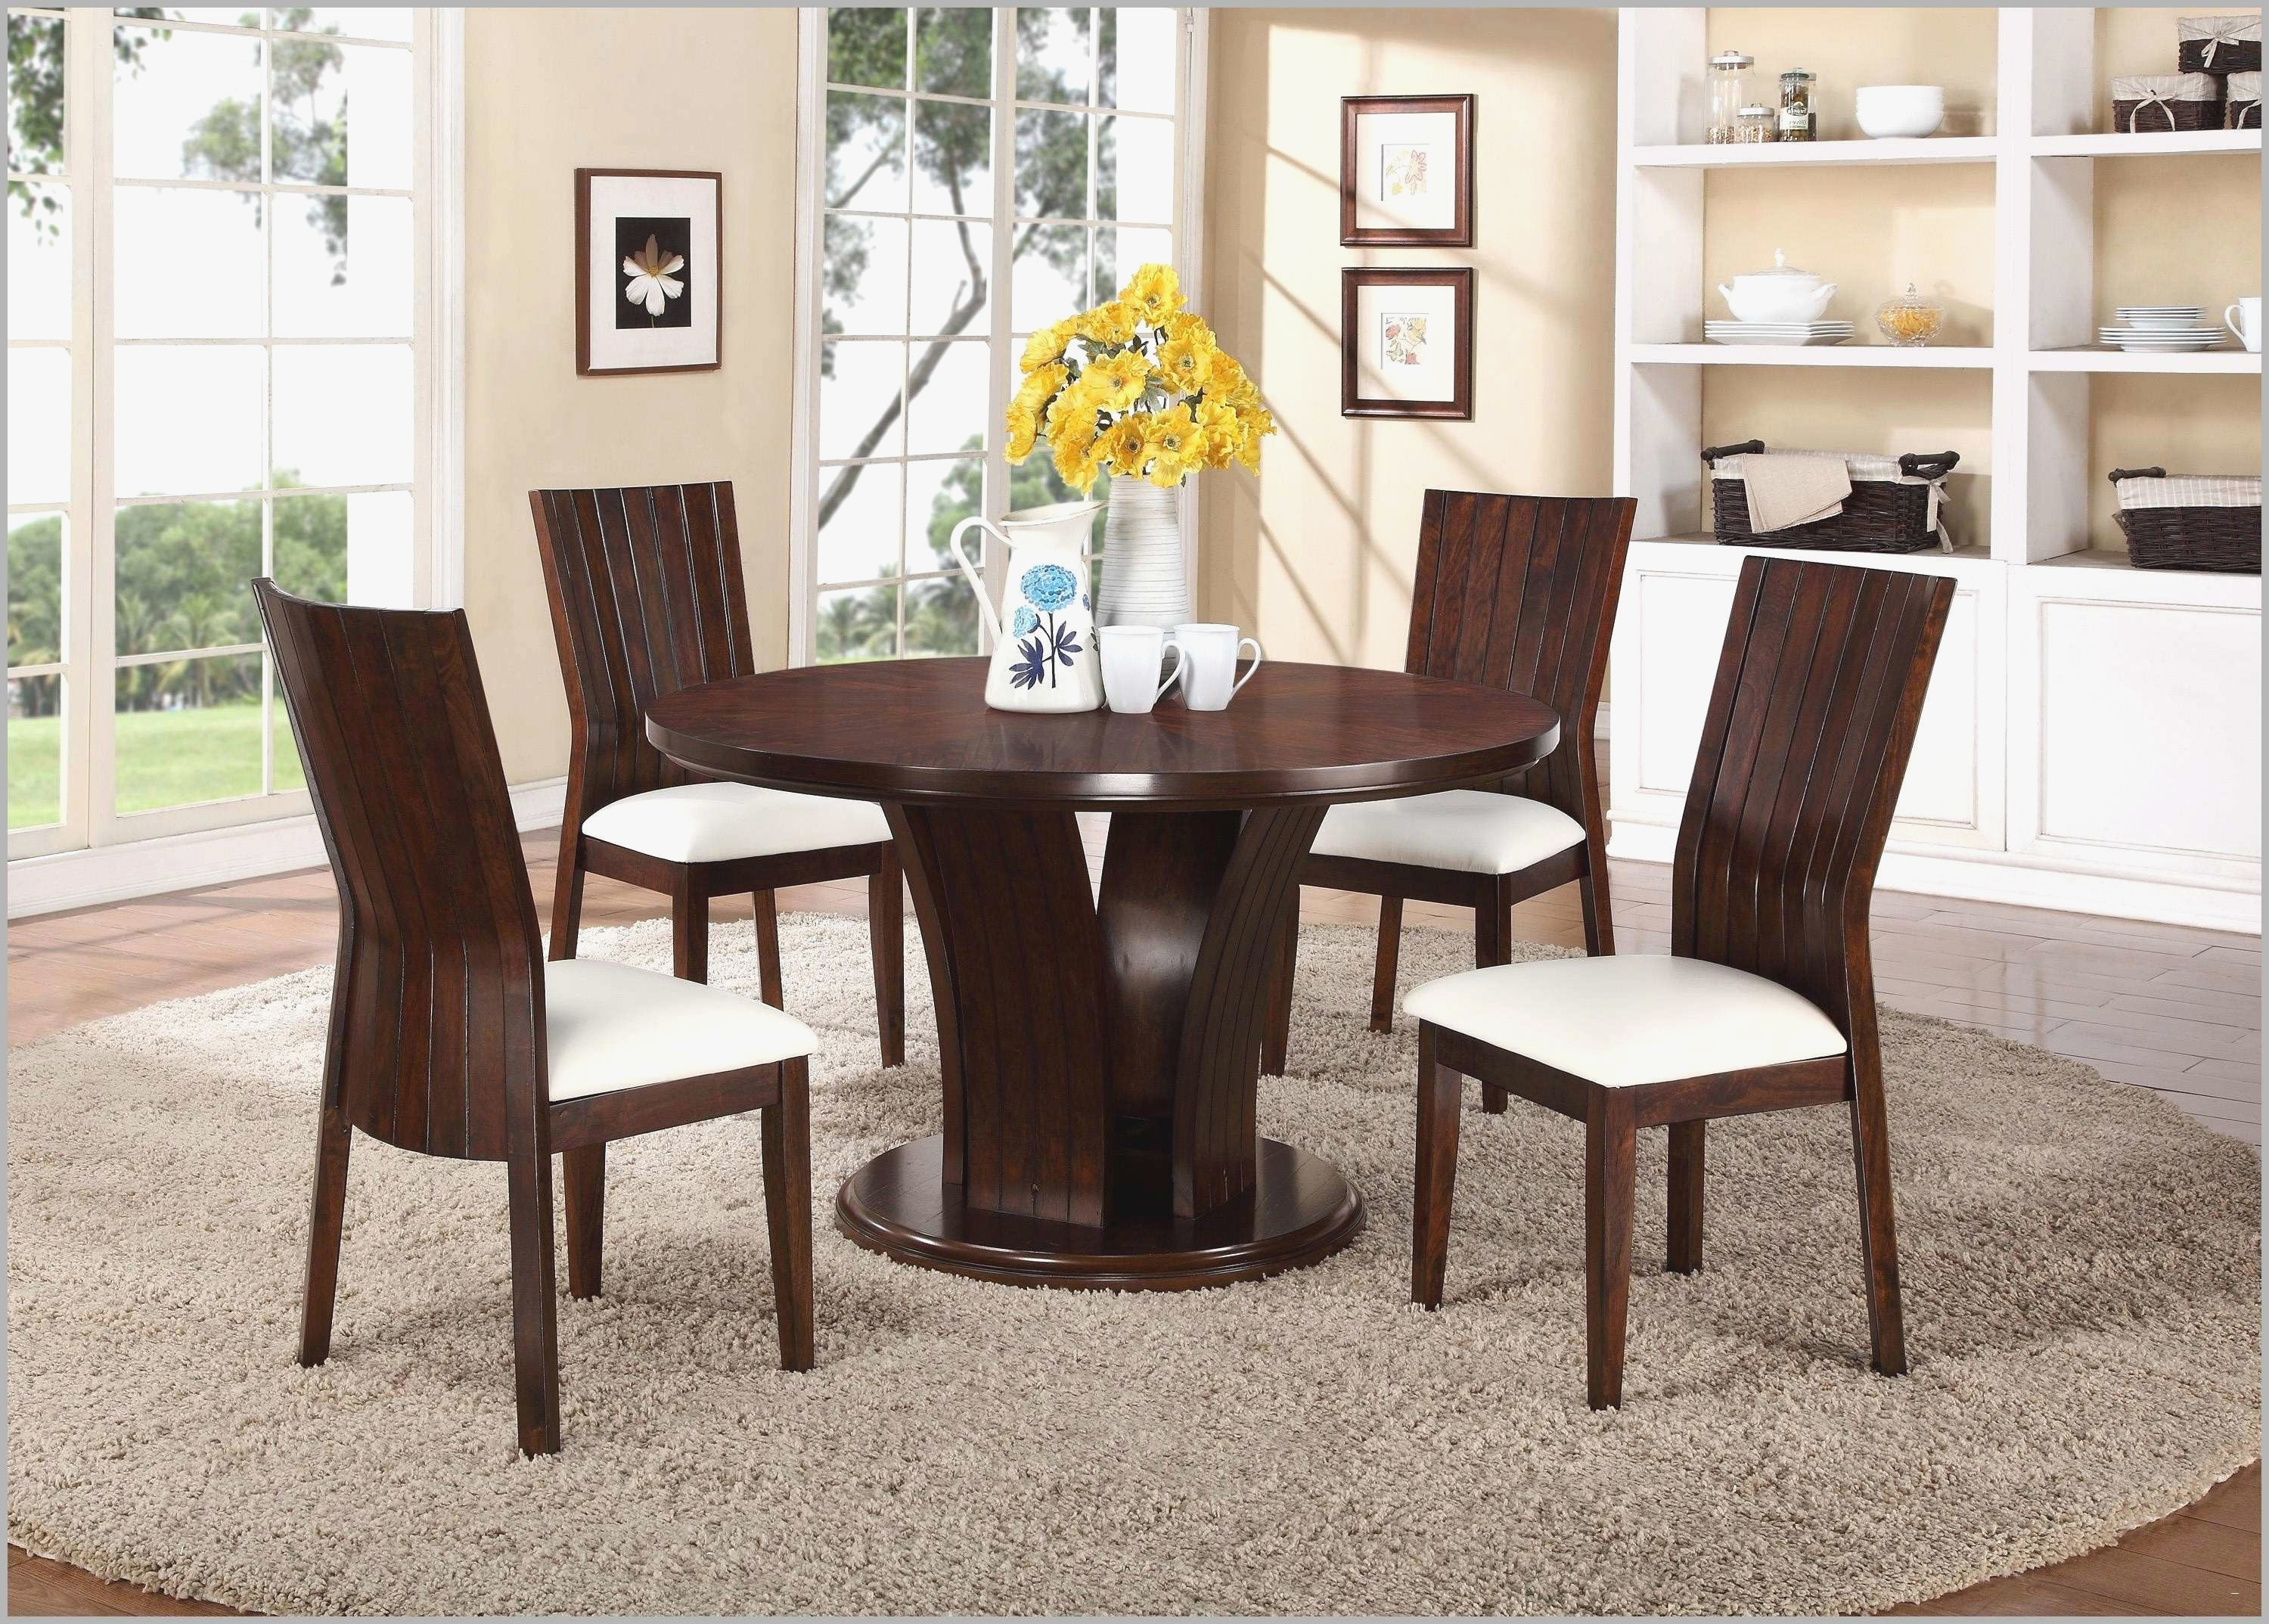 8 Seater Dining Tables And Chairs in Recent 8 Seater Dining Table Beautiful 8 Seater Dining Table Set Awesome 6